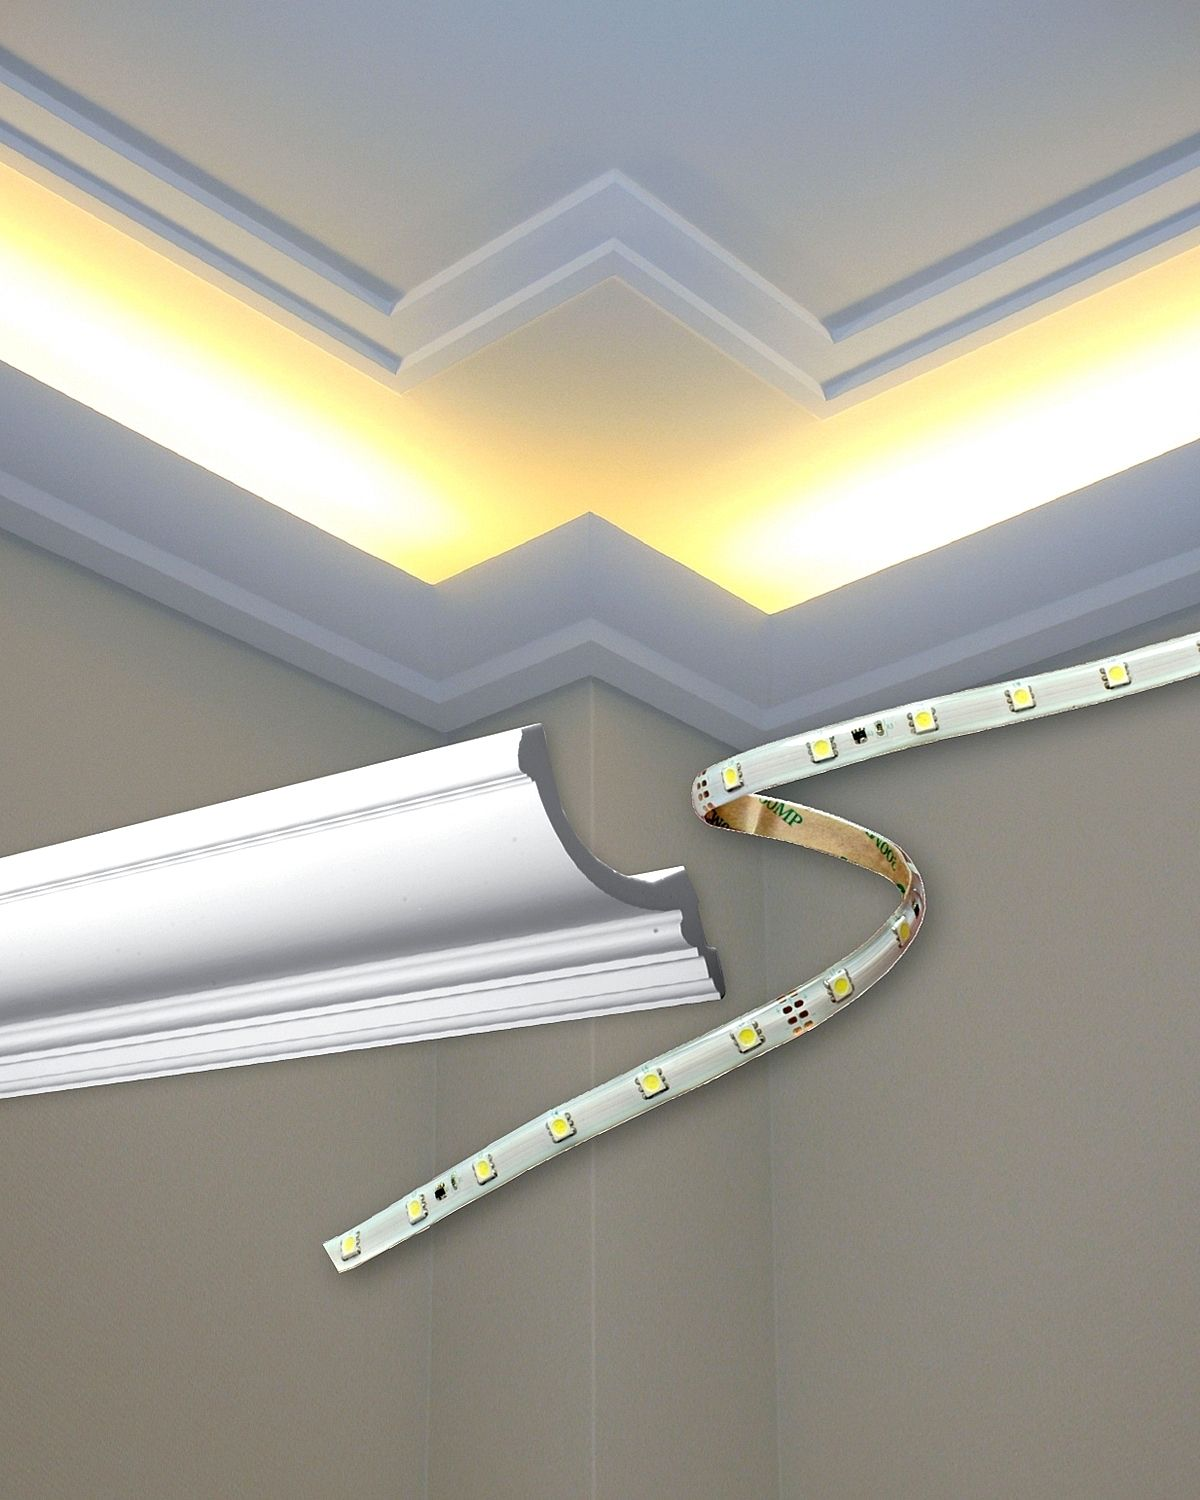 crown moulding lighting. Outwater Now Offers Economically Priced Recycled Cornice And Crown Mouldings That Have Been Specifically Designed For Use With Indirect Lighting. Moulding Lighting